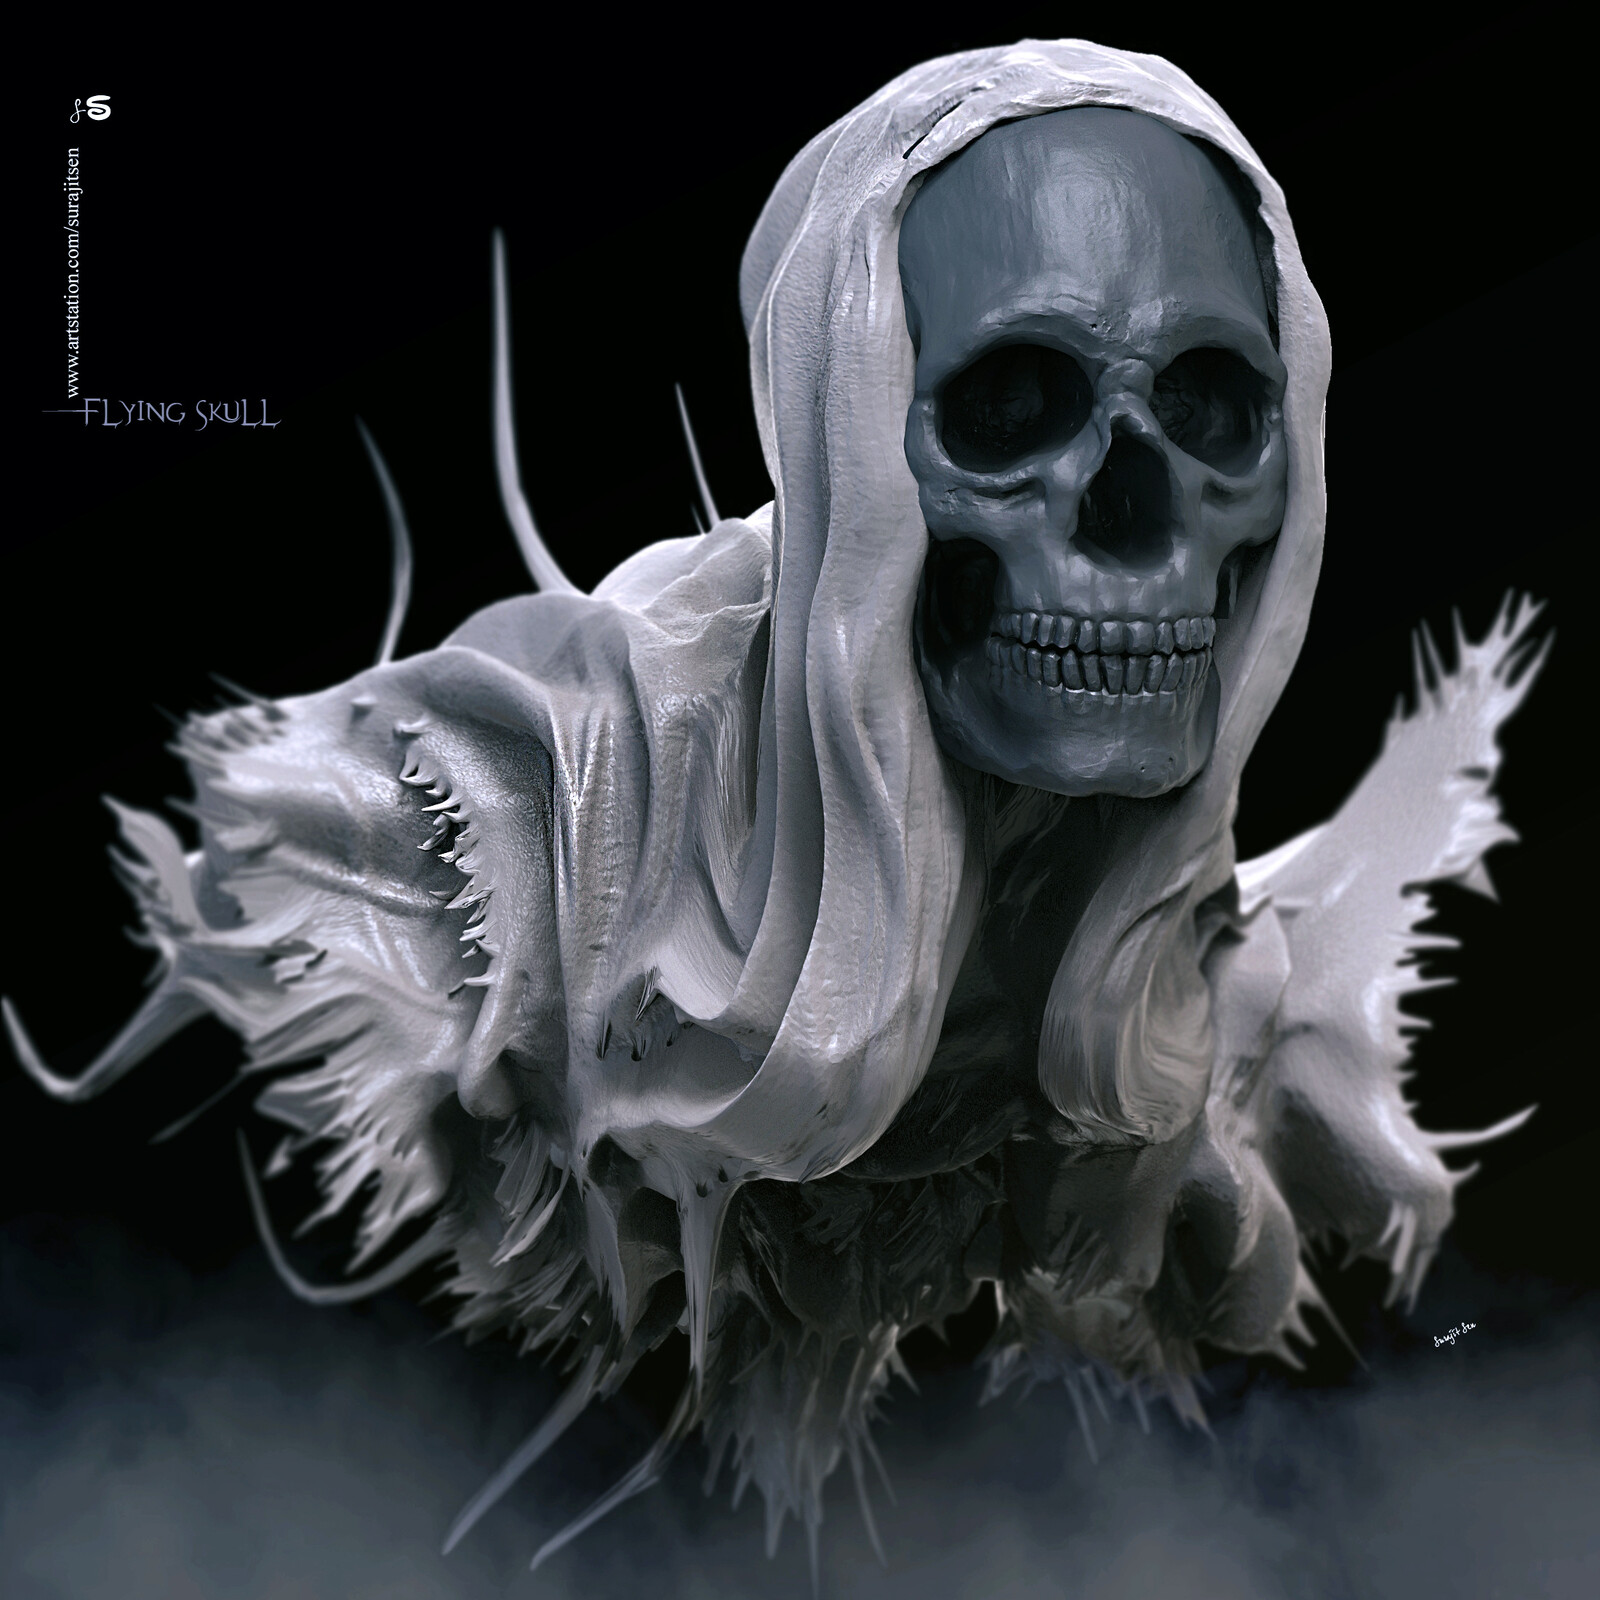 Flying Skull. My free time speed Digital Sculpture. Played with brushes.